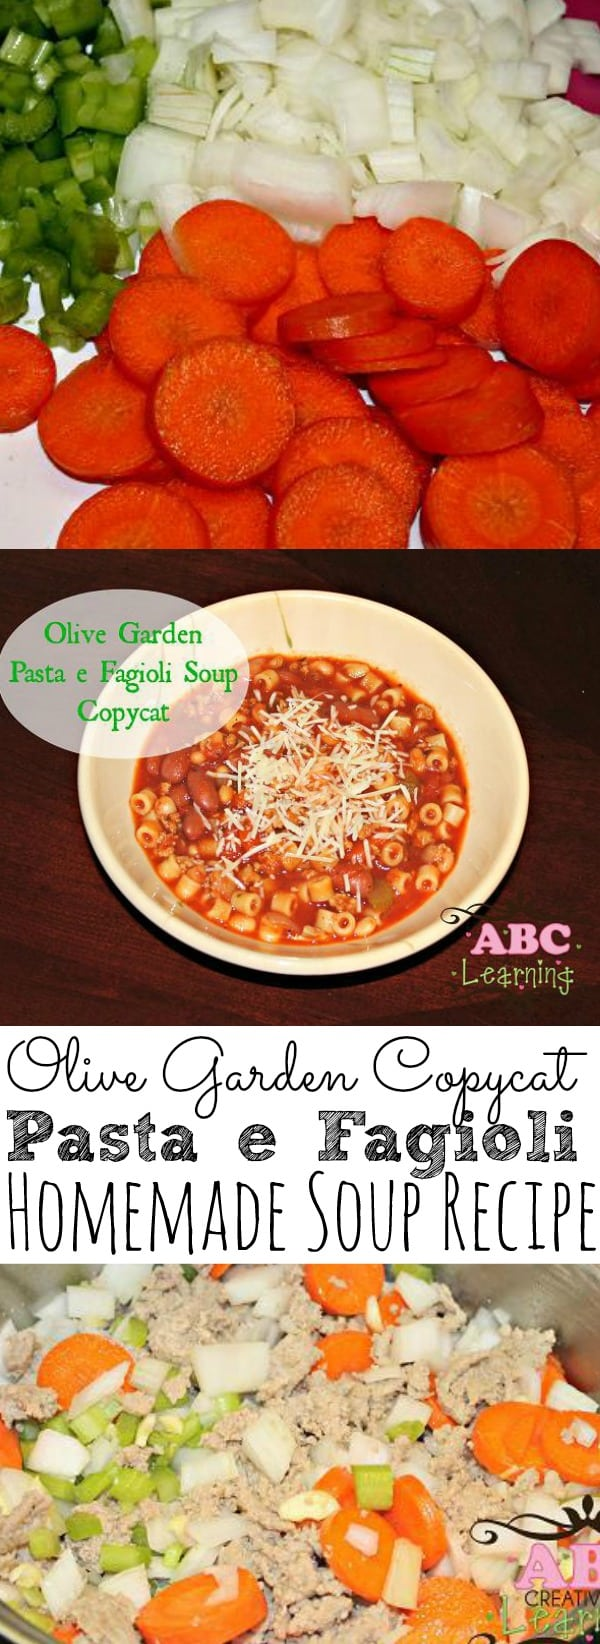 Looking for an easy and delicious soup recipe? Check out our Olive Garden Pasta e Fagioli Soup Copycat recipe. Perfect for cooler weather and when you're not feeling well. It's filled with lots of veggies and some changes my family loved. - simplytodaylife.com